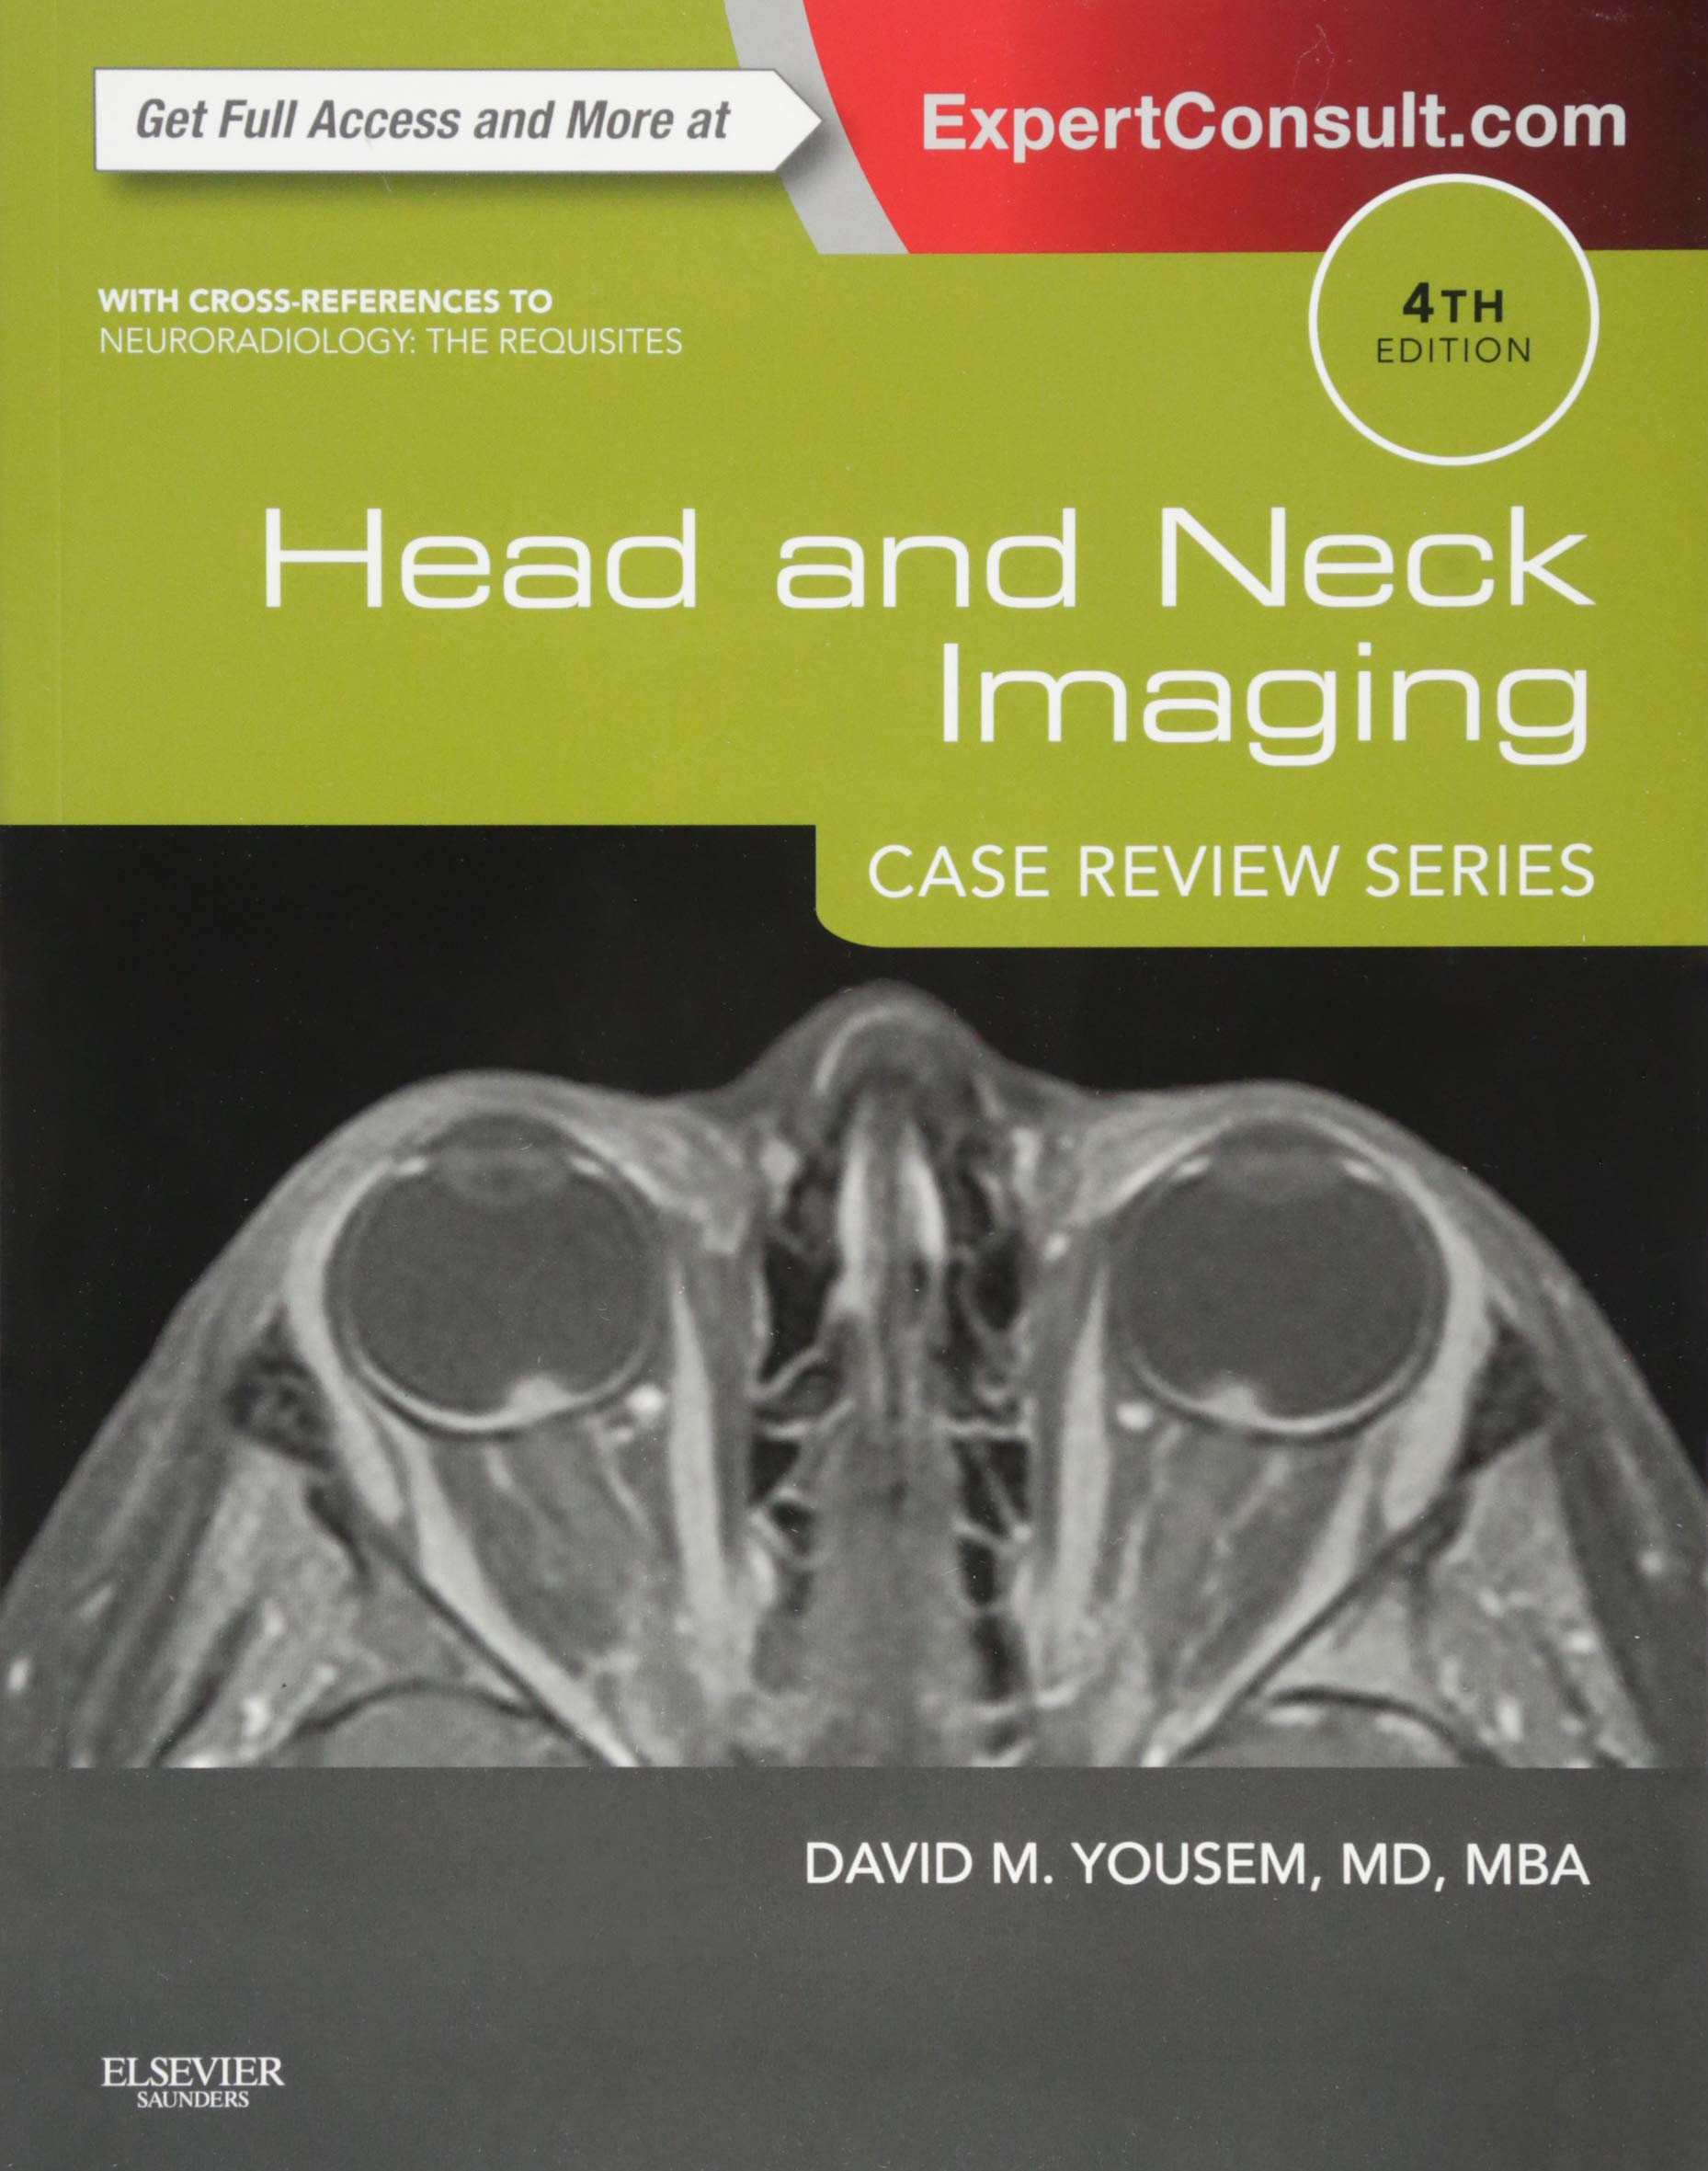 Head and Neck Imaging: Case Review Series, 4e: Amazon.co.uk: David M.  Yousem MD MBA: Books